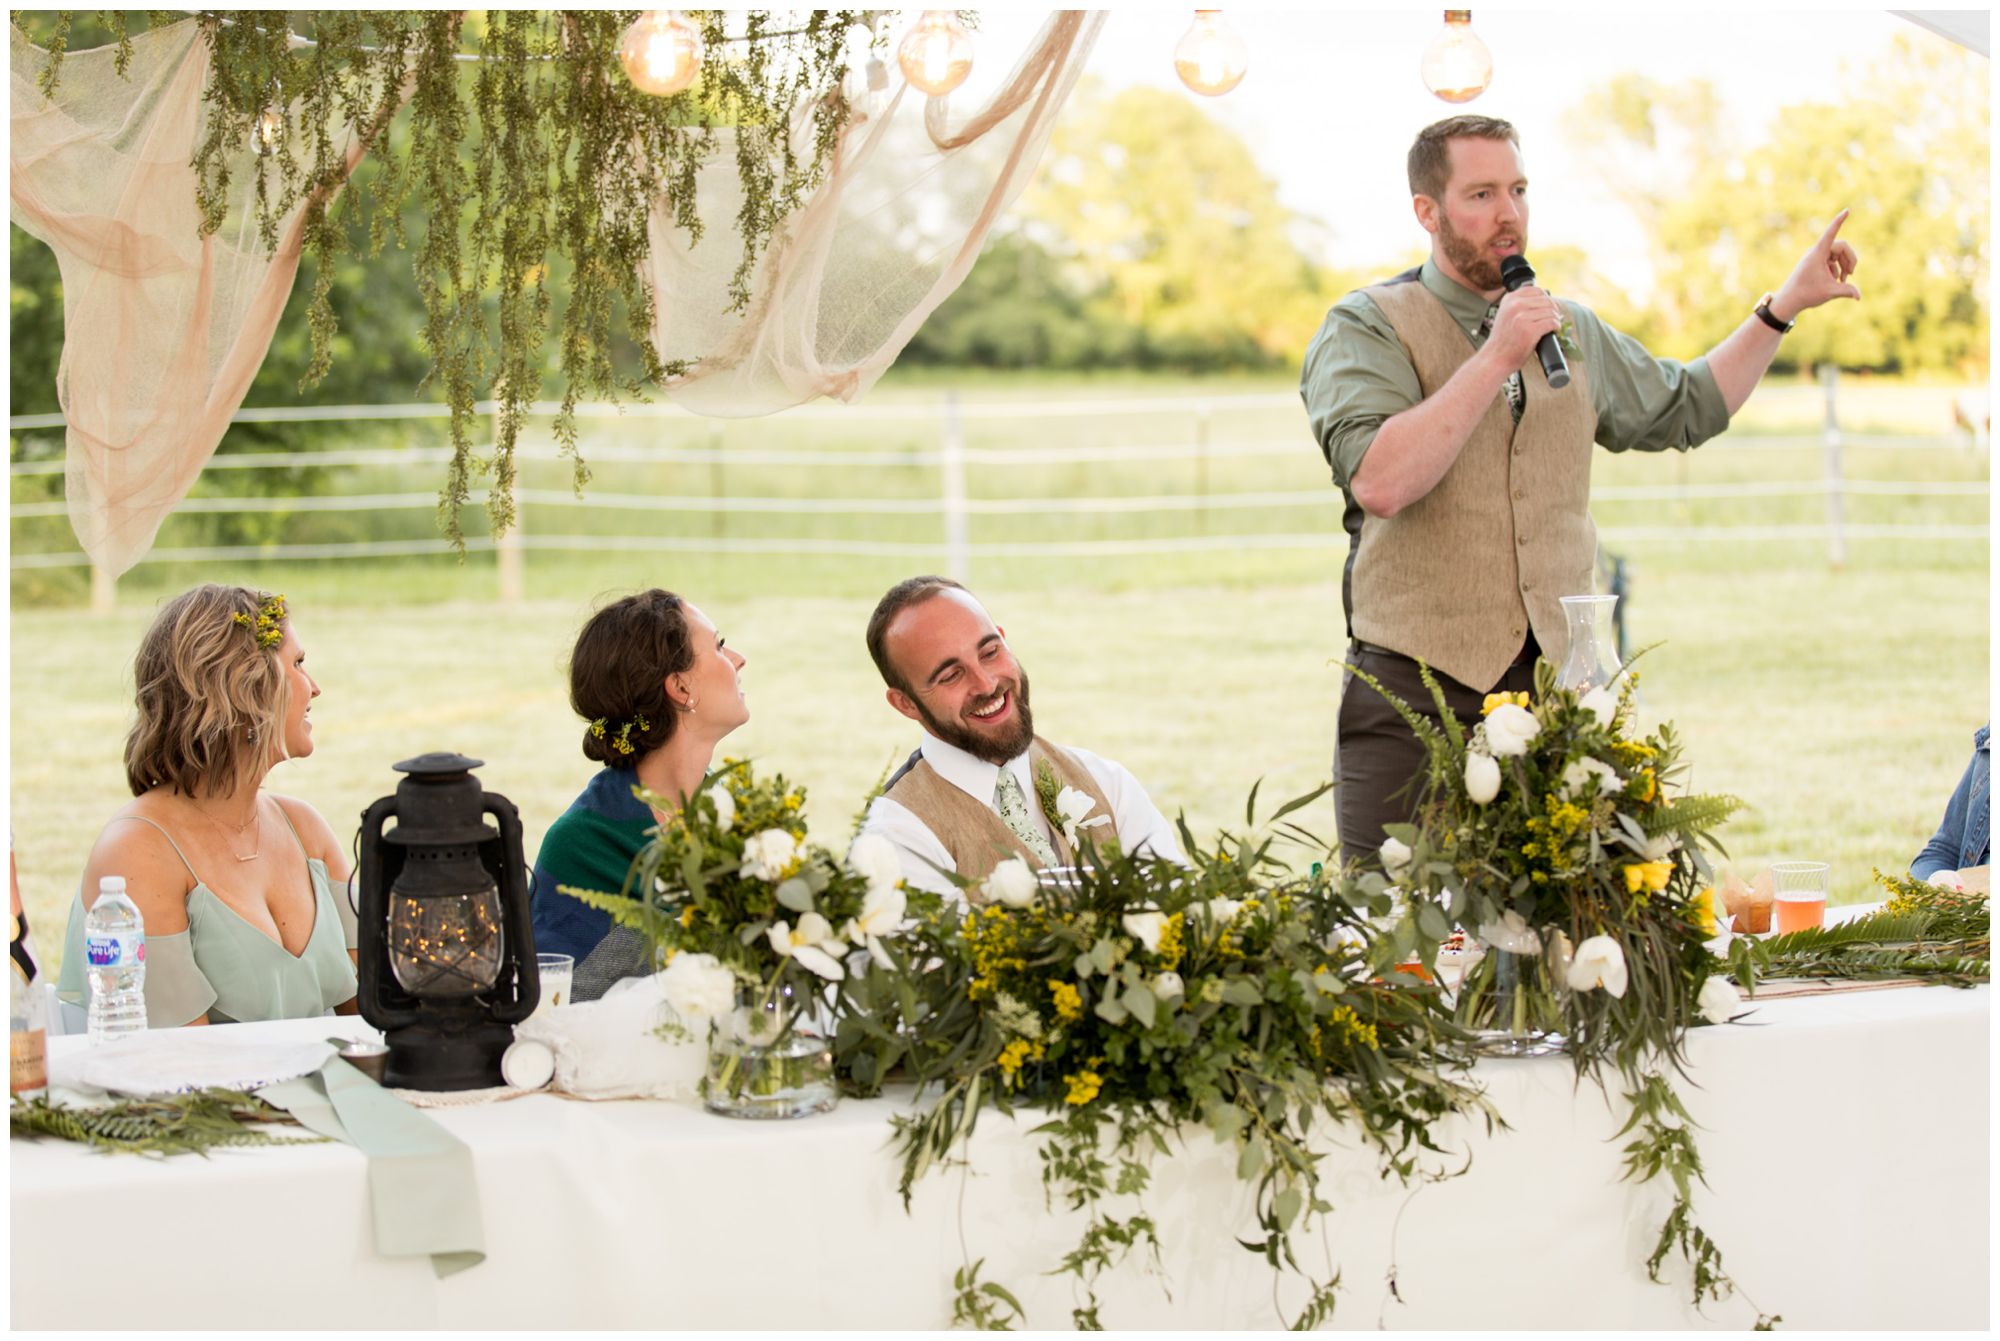 best man gives toast to bride and groom at rustic Indianapolis tented wedding reception